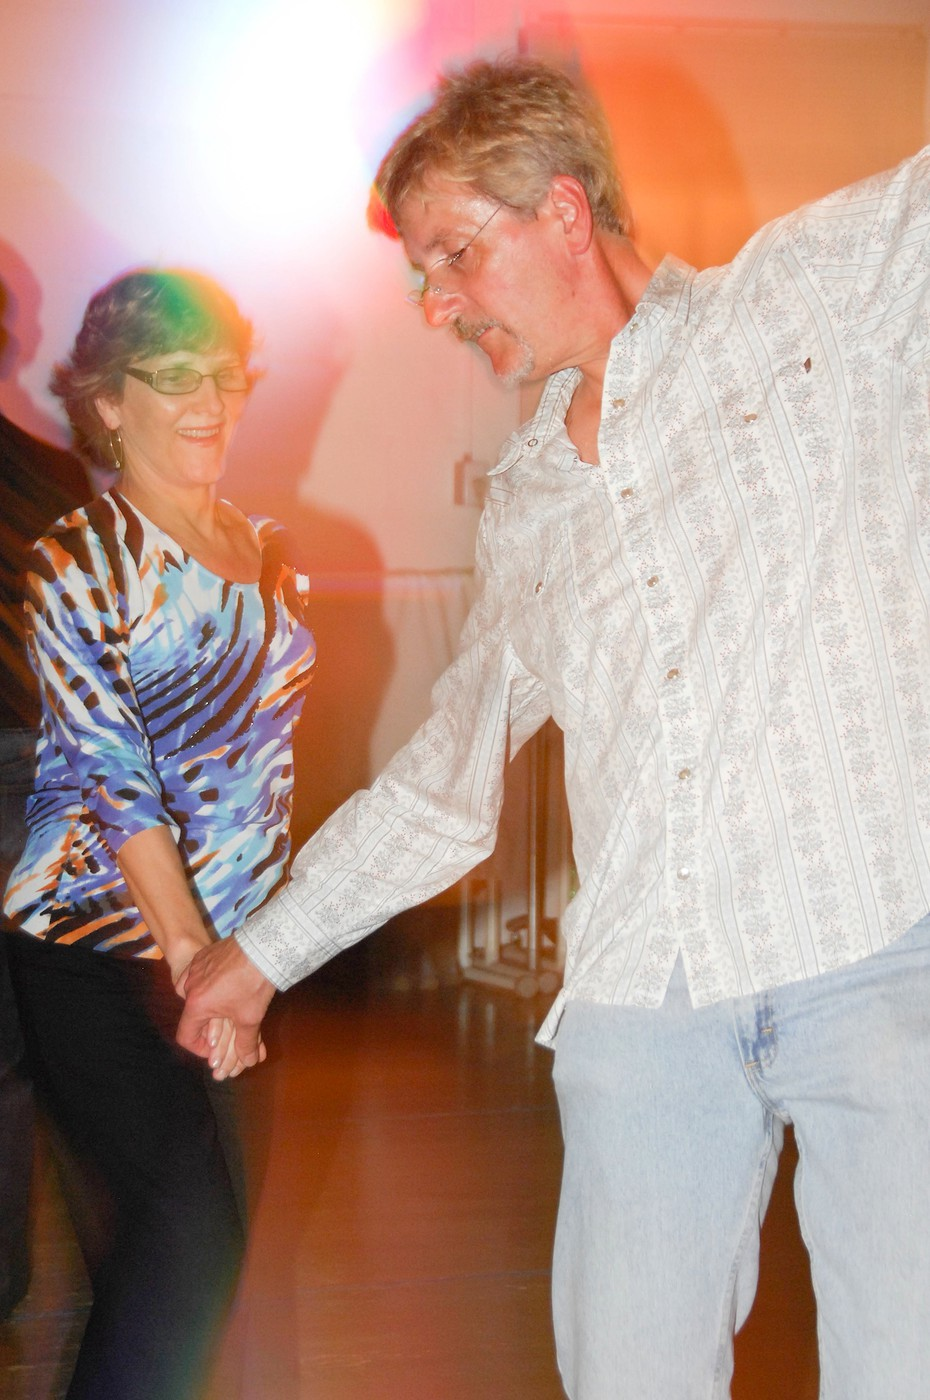 Al & Cindy dance West Coast Swing in Norwalk, CT on April 19, 2012